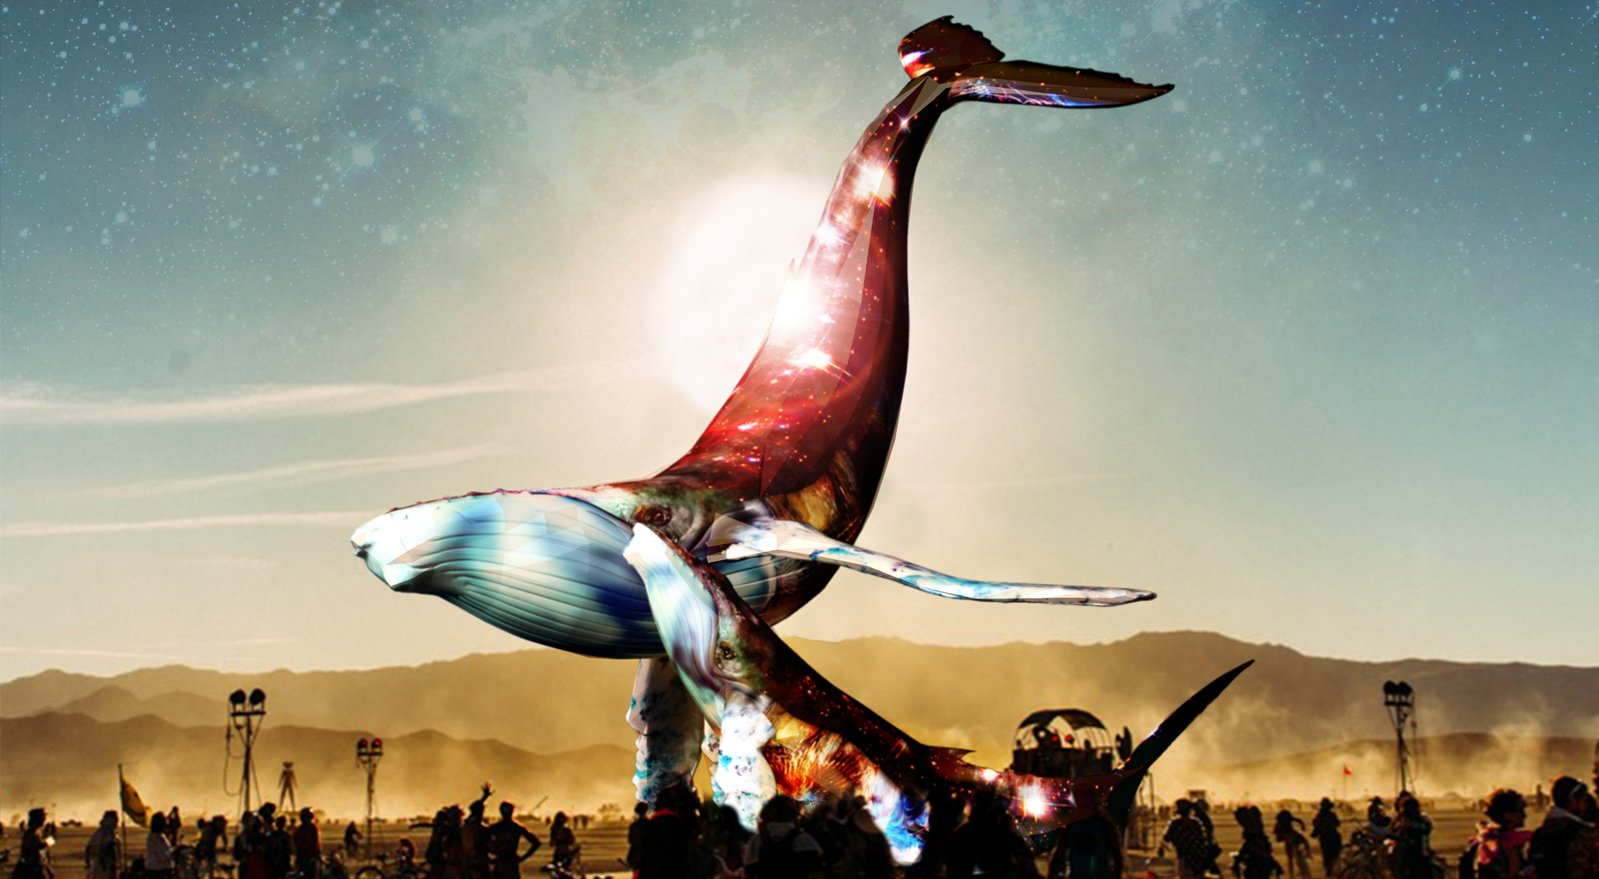 The Space Whale by The Pier Group with Matthew Schultz – art of burning man 2016